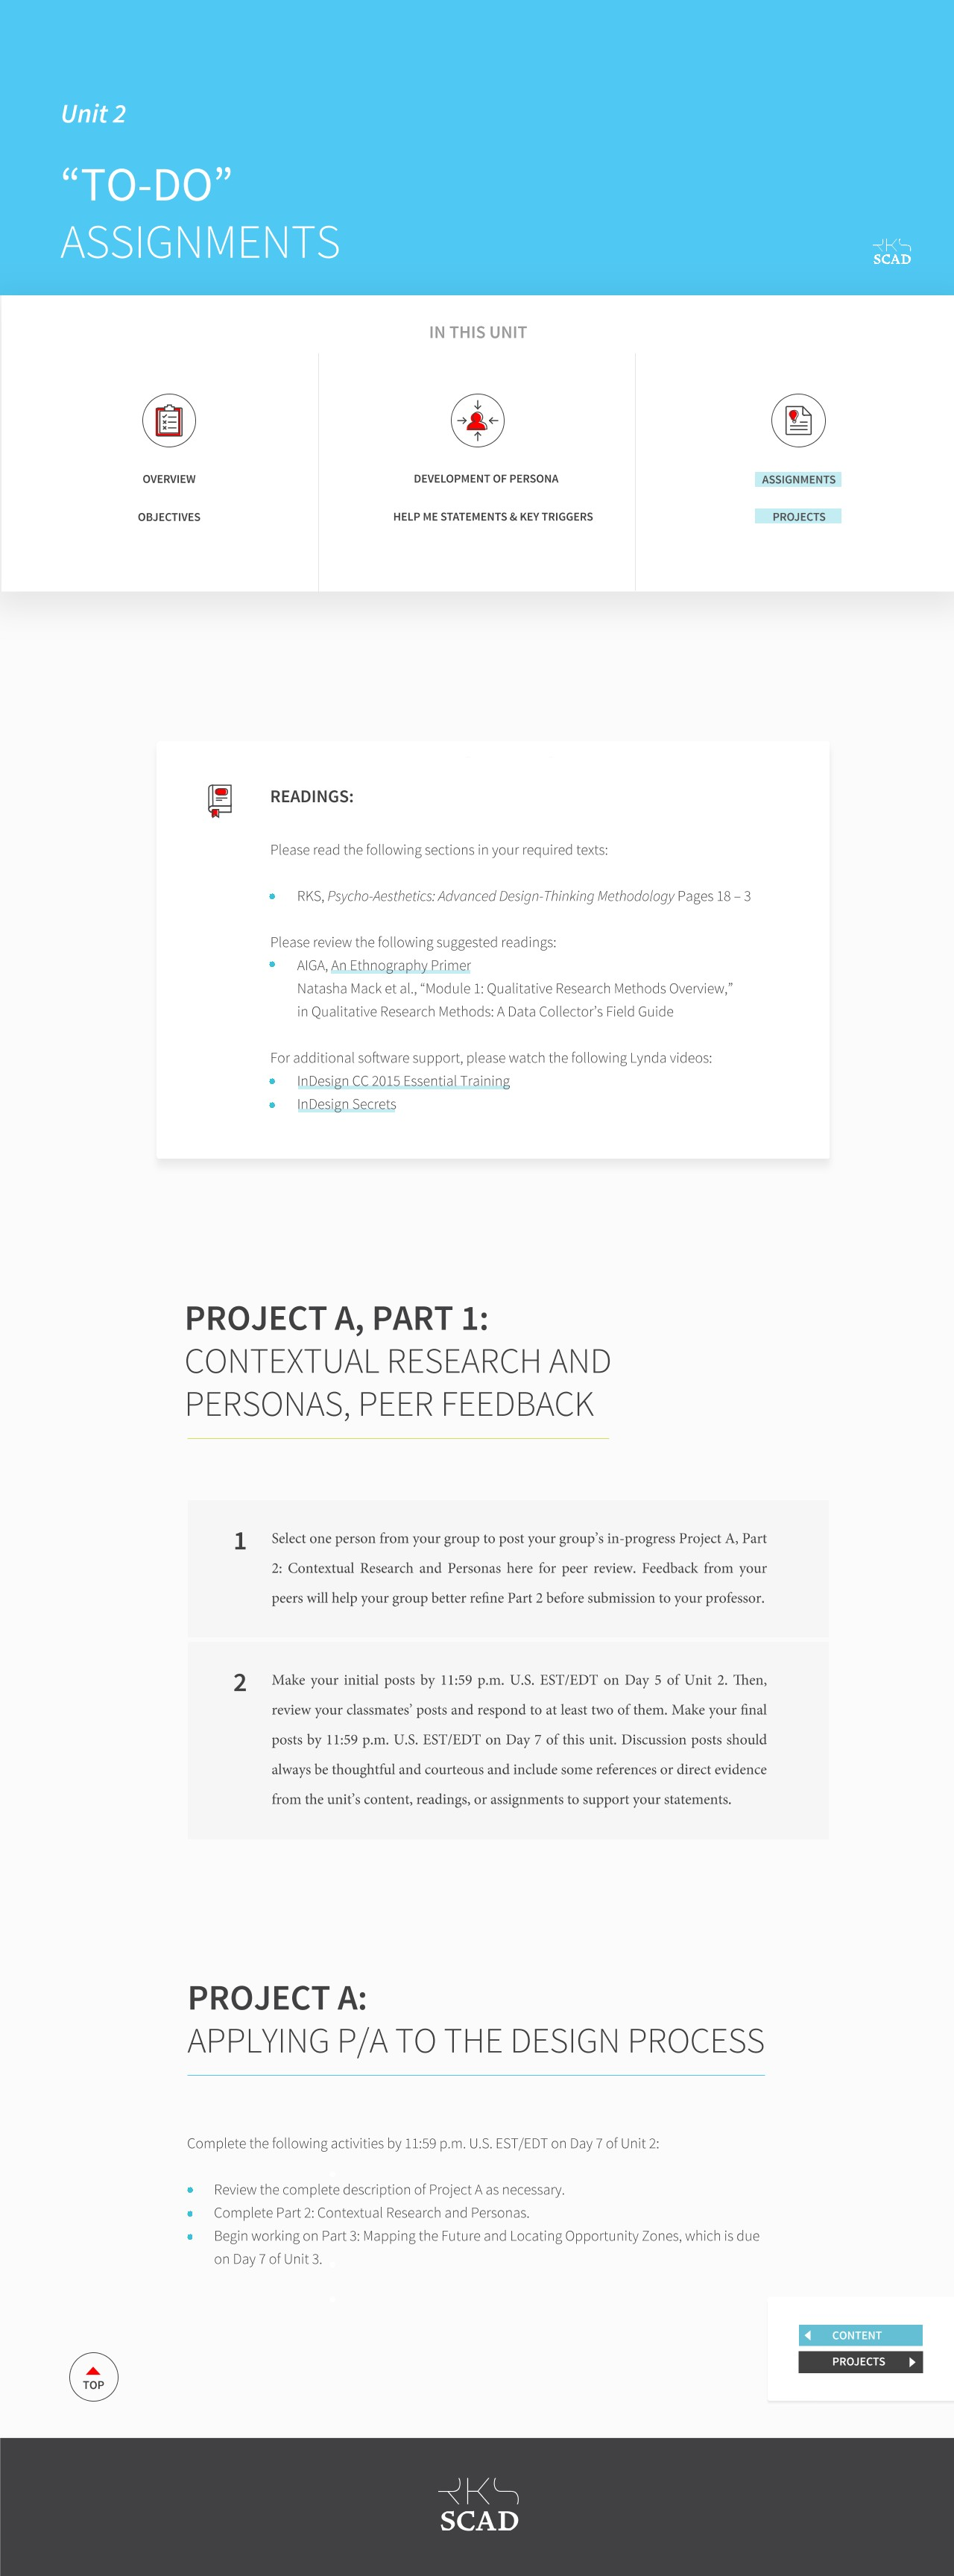 Assignment Page Sample - The assignments page contains the distinct parts of the project. In this case for the second unit of the quarter the student goes through Project A, Part 1.